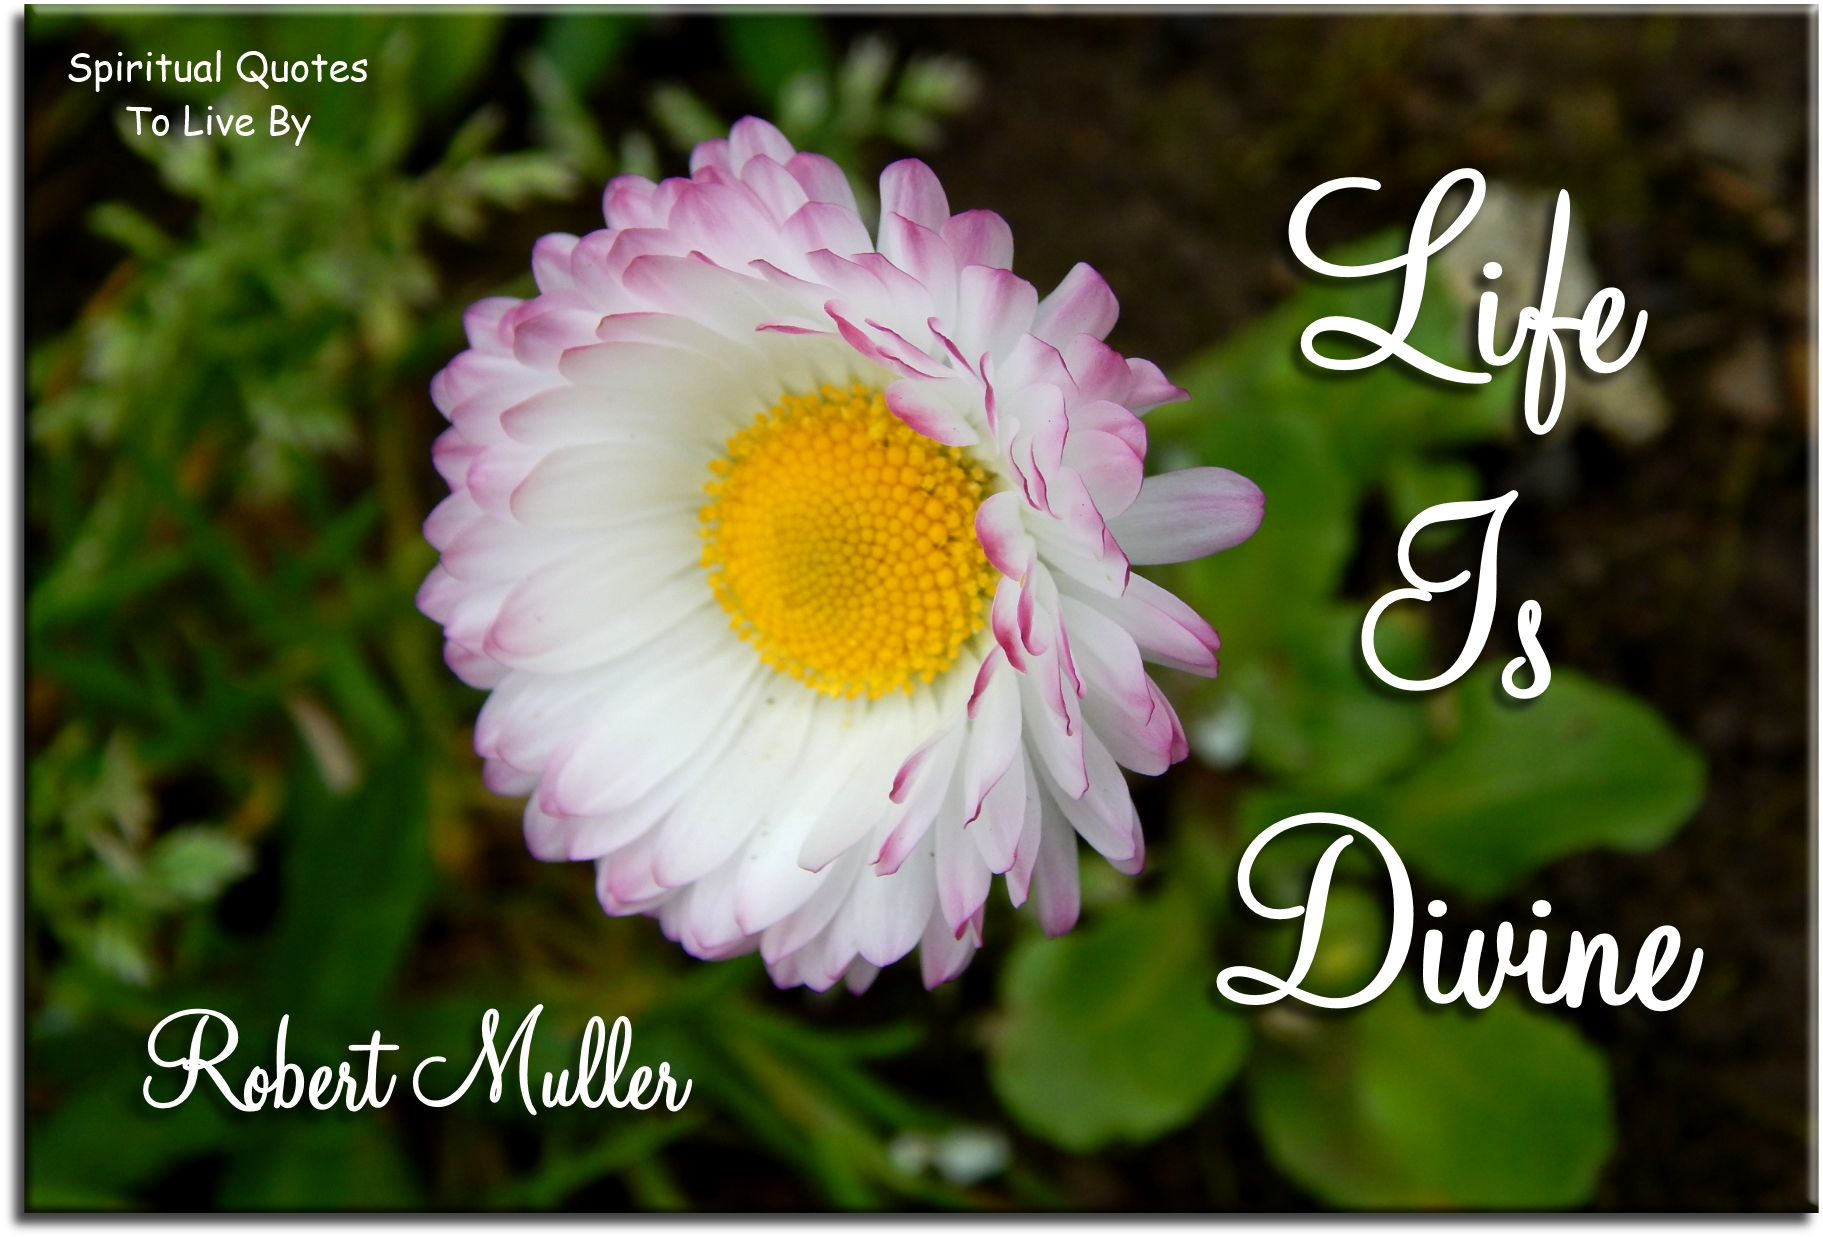 Robert Muller quote: Live is Divine. - Spiritual Quotes To Live By